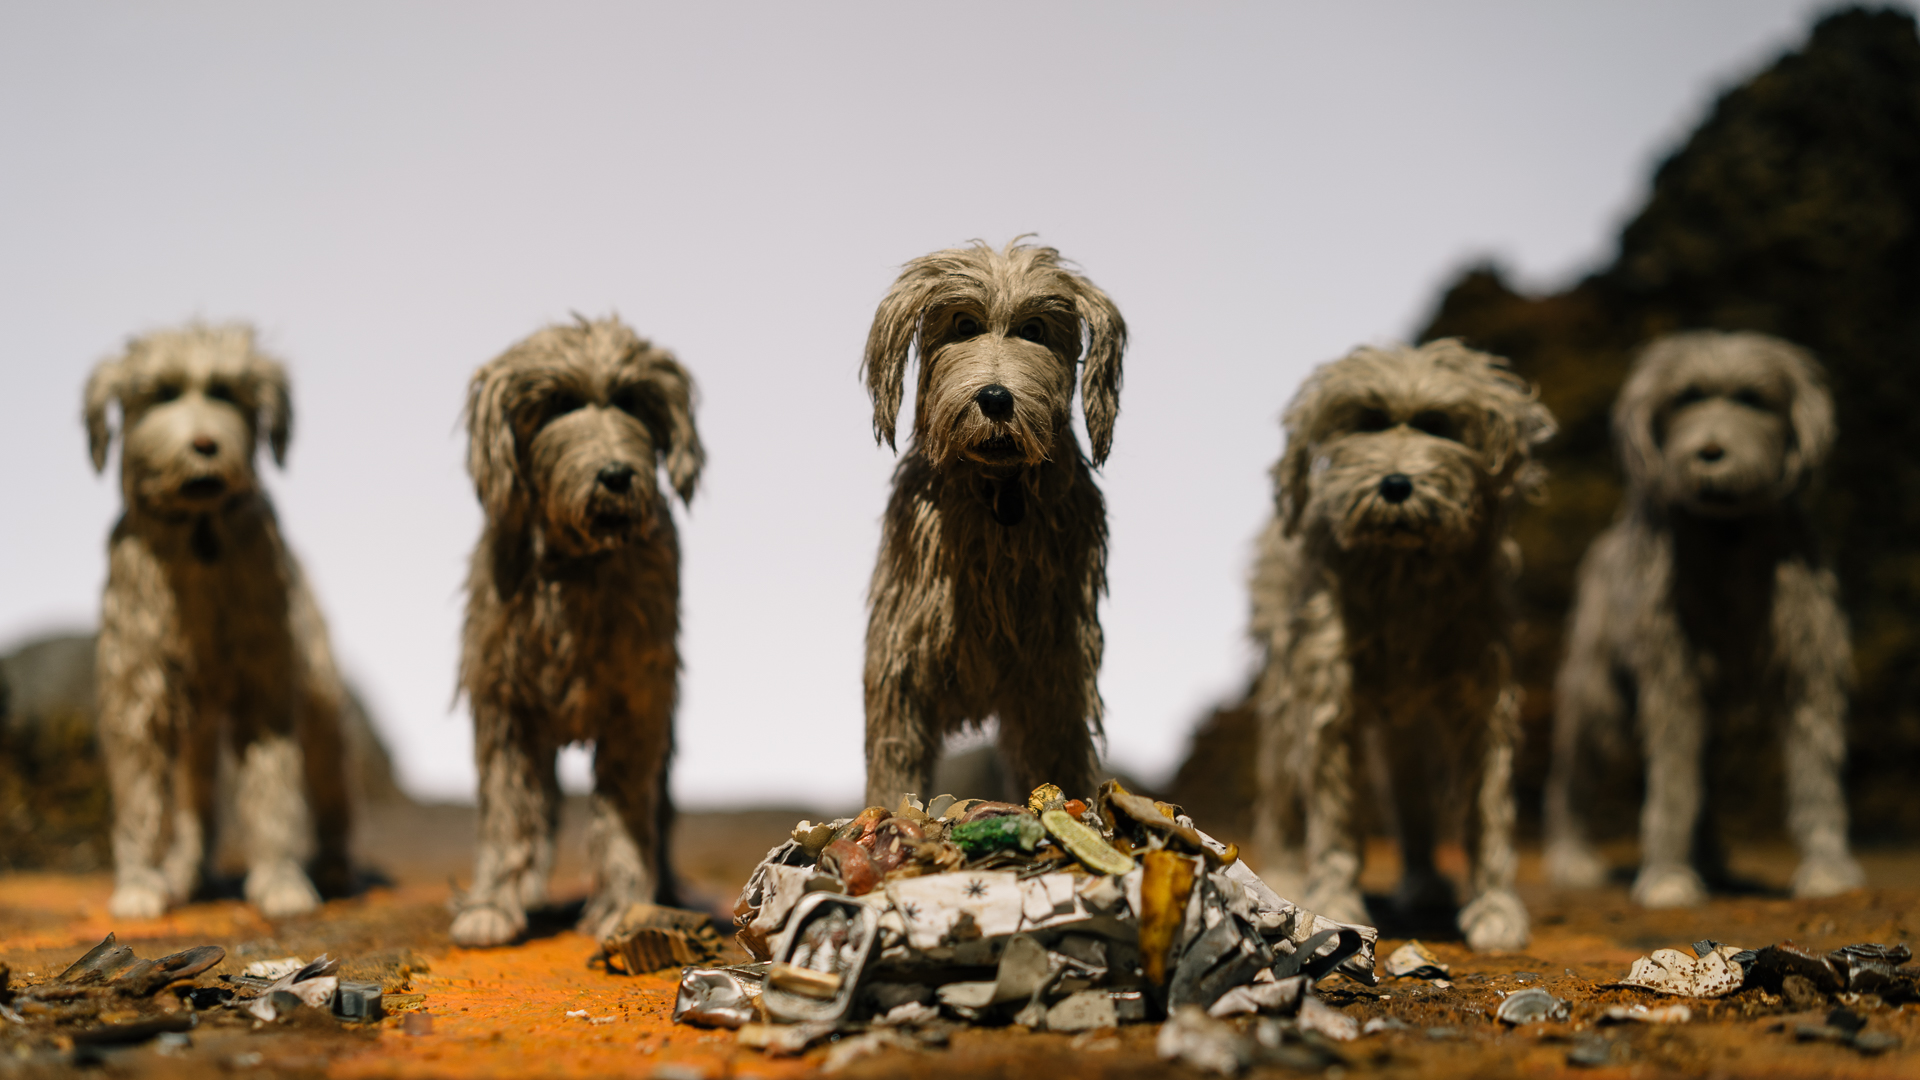 Immagine da Island of Dogs di Wes Anderson ©Paul Hudson CC BY-SA 2.0 https://de.wikipedia.org/wiki/Datei:Isle_of_Dogs_(26306645067).jpg